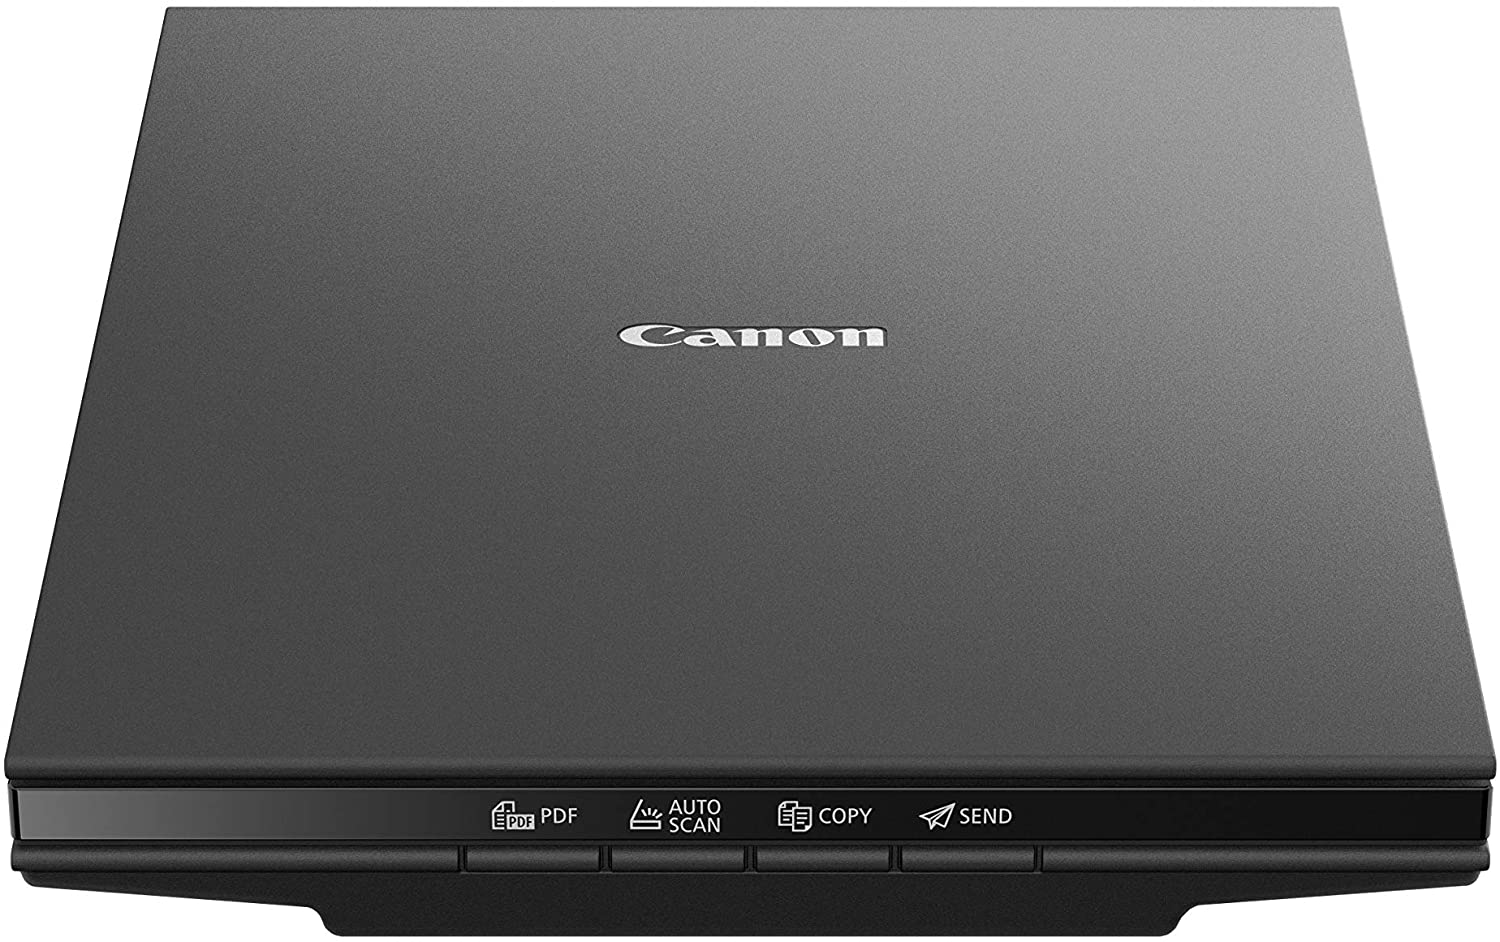 Canon LiDE 300 Colour Flatbed Scanner - Black, 2400x2400 dpi uk reviews